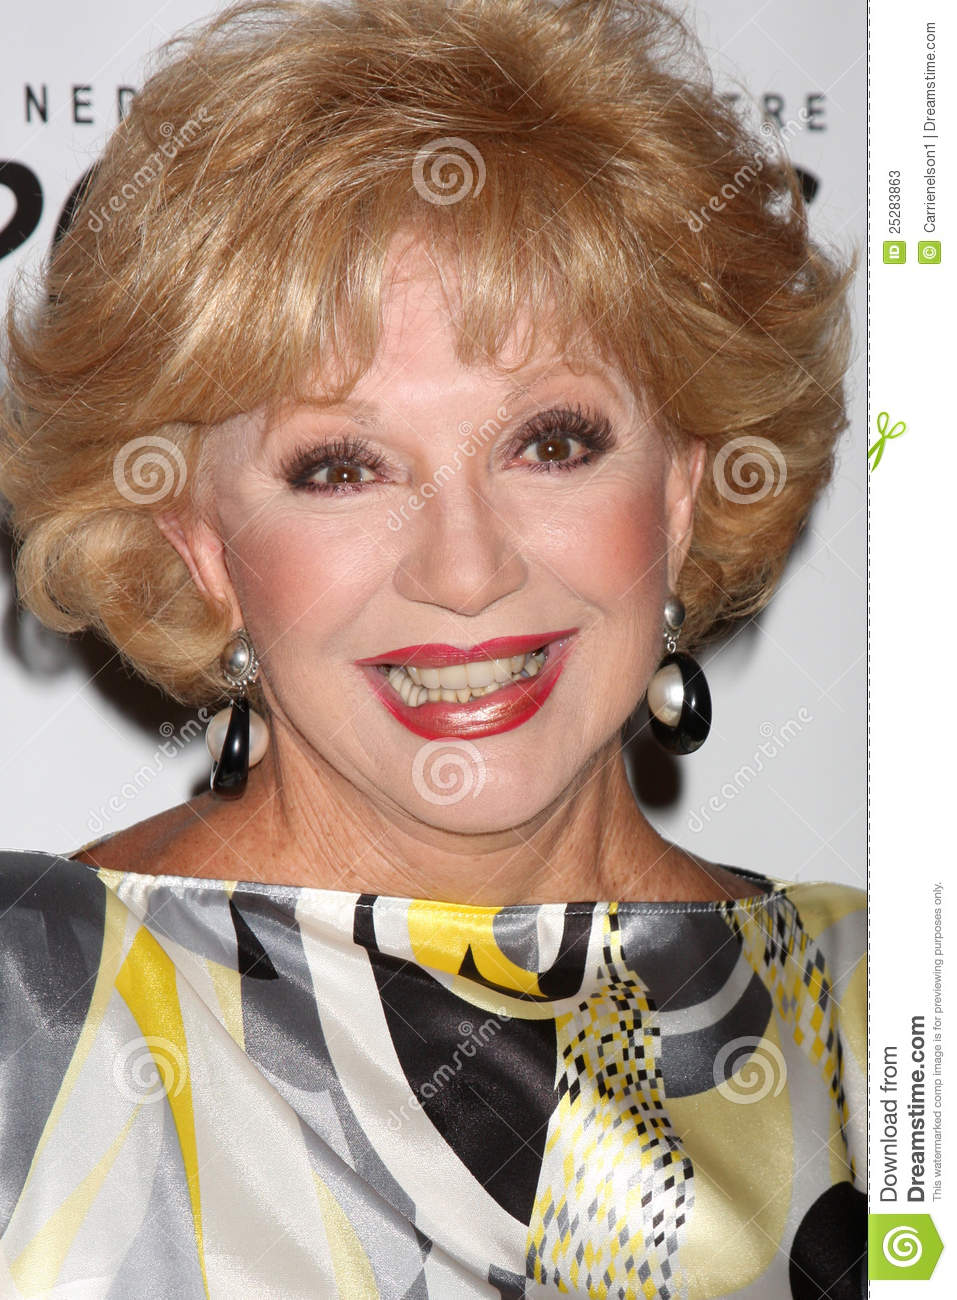 ruta lee heightruta lee actriz, ruta lee, ruta lee photos, ruta lee movies, ruta lee net worth, ruta lee imdb, ruta lee measurements, ruta lee gunsmoke, ruta lee bio, ruta lee andy griffith, ruta lee days of our lives, ruta lee andy griffith show, ruta lee feet, ruta lee height, ruta lee hot, ruta lee hogans heroes, ruta lee perry mason, ruta lee steel magnolias, ruta lee house, ruta lee husband